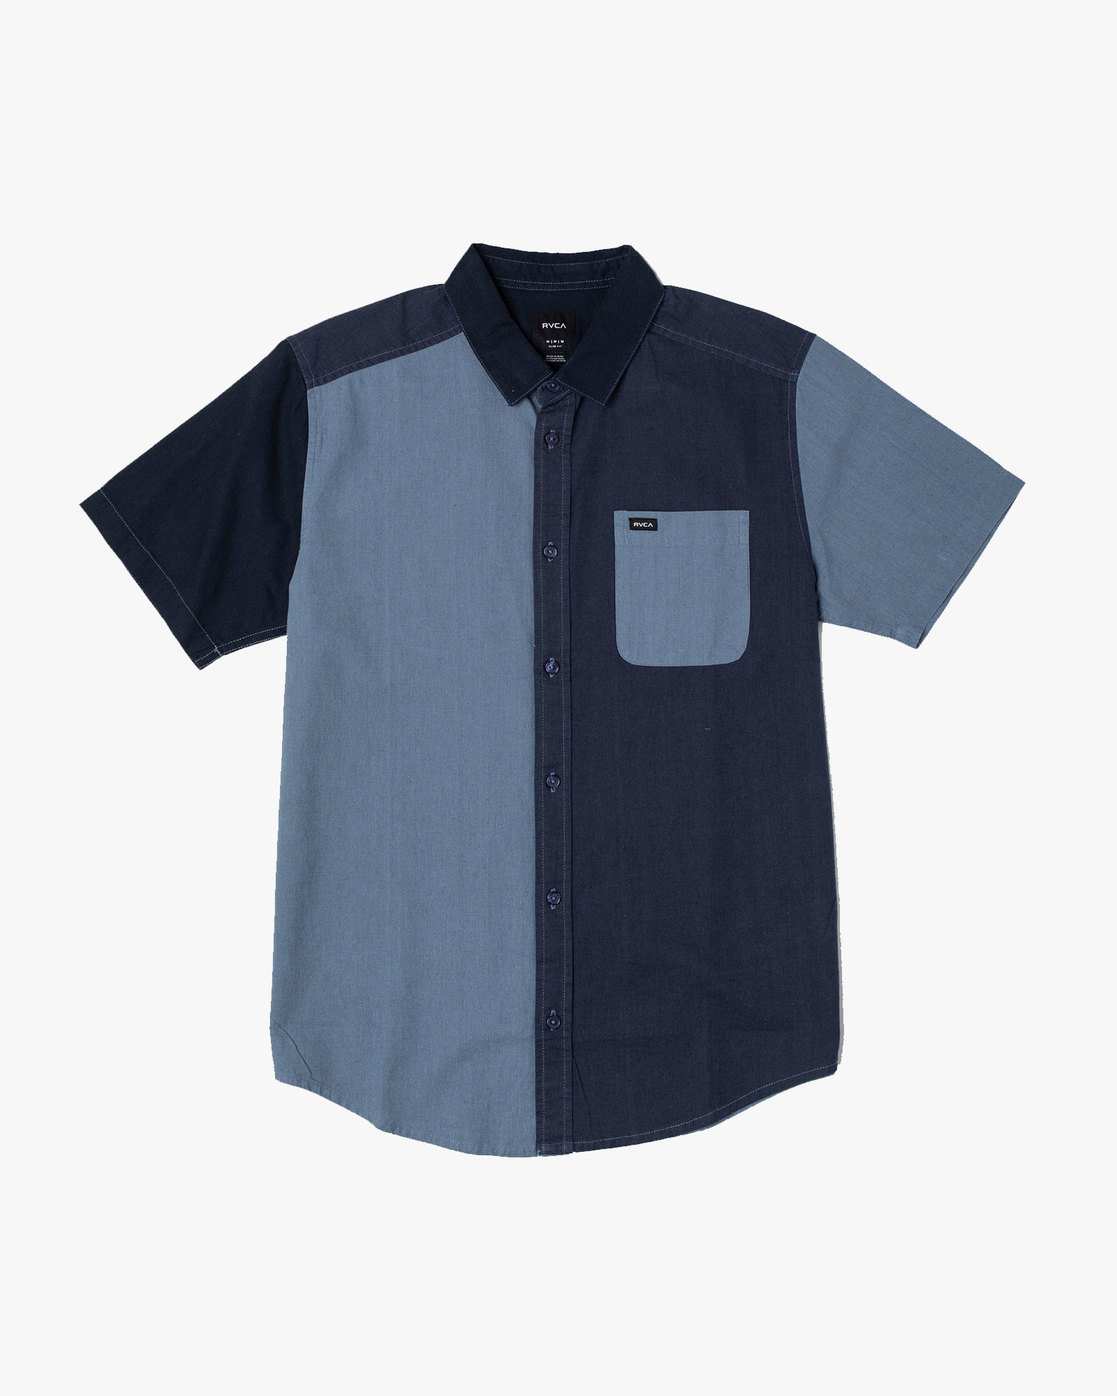 2 BLOCKED CRUSHED BUTTON-UP SHIRT Blue M5151RBC RVCA